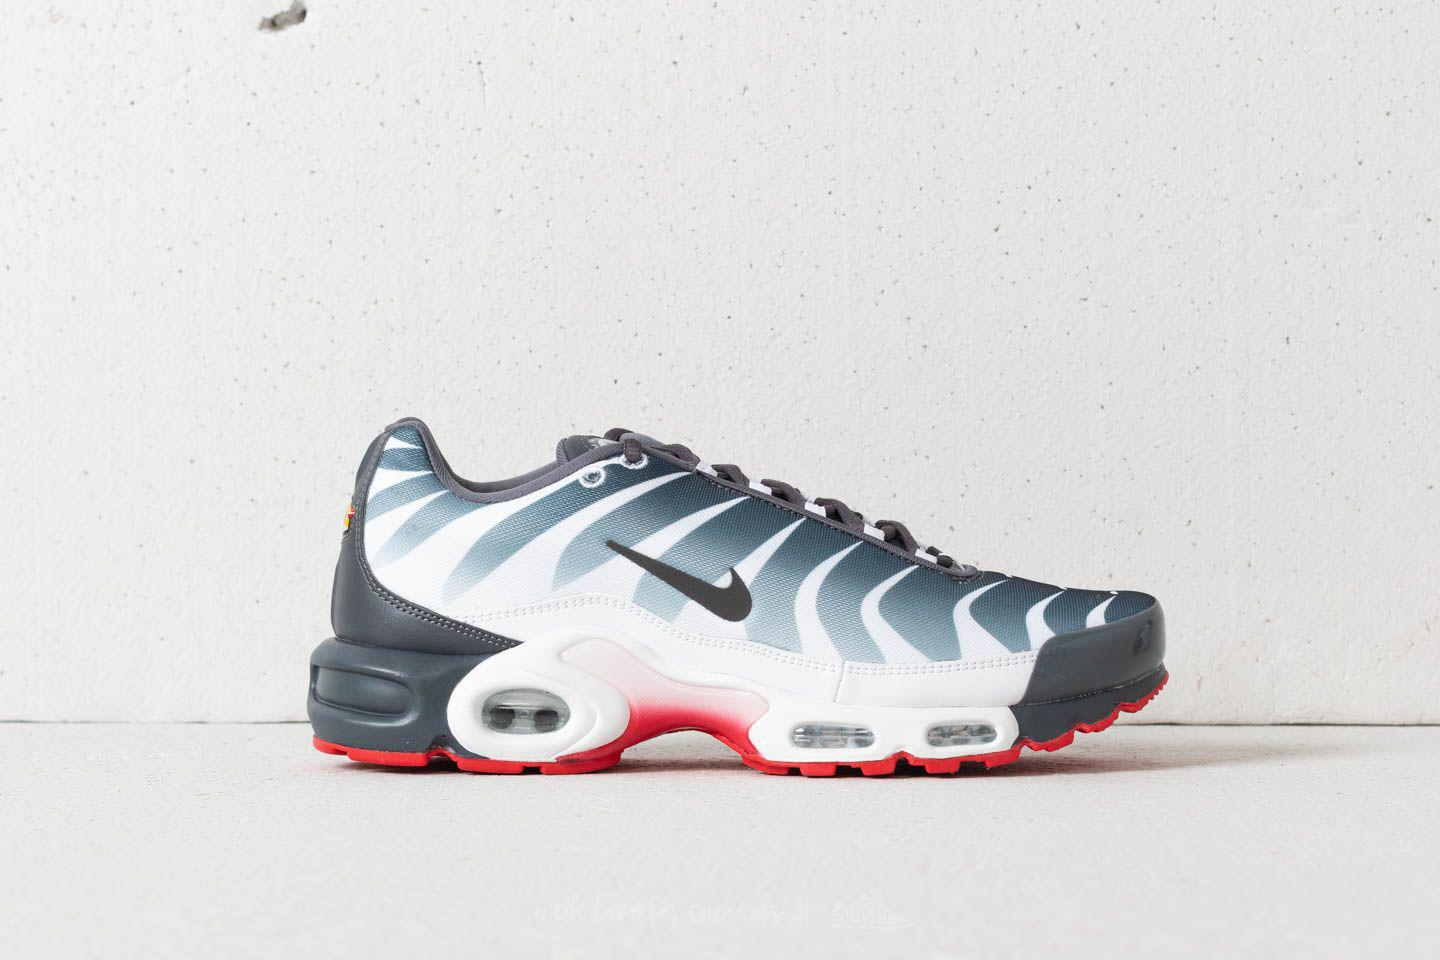 Nike Rubber Air Max Plus Tn Se White Dark Grey speed Red